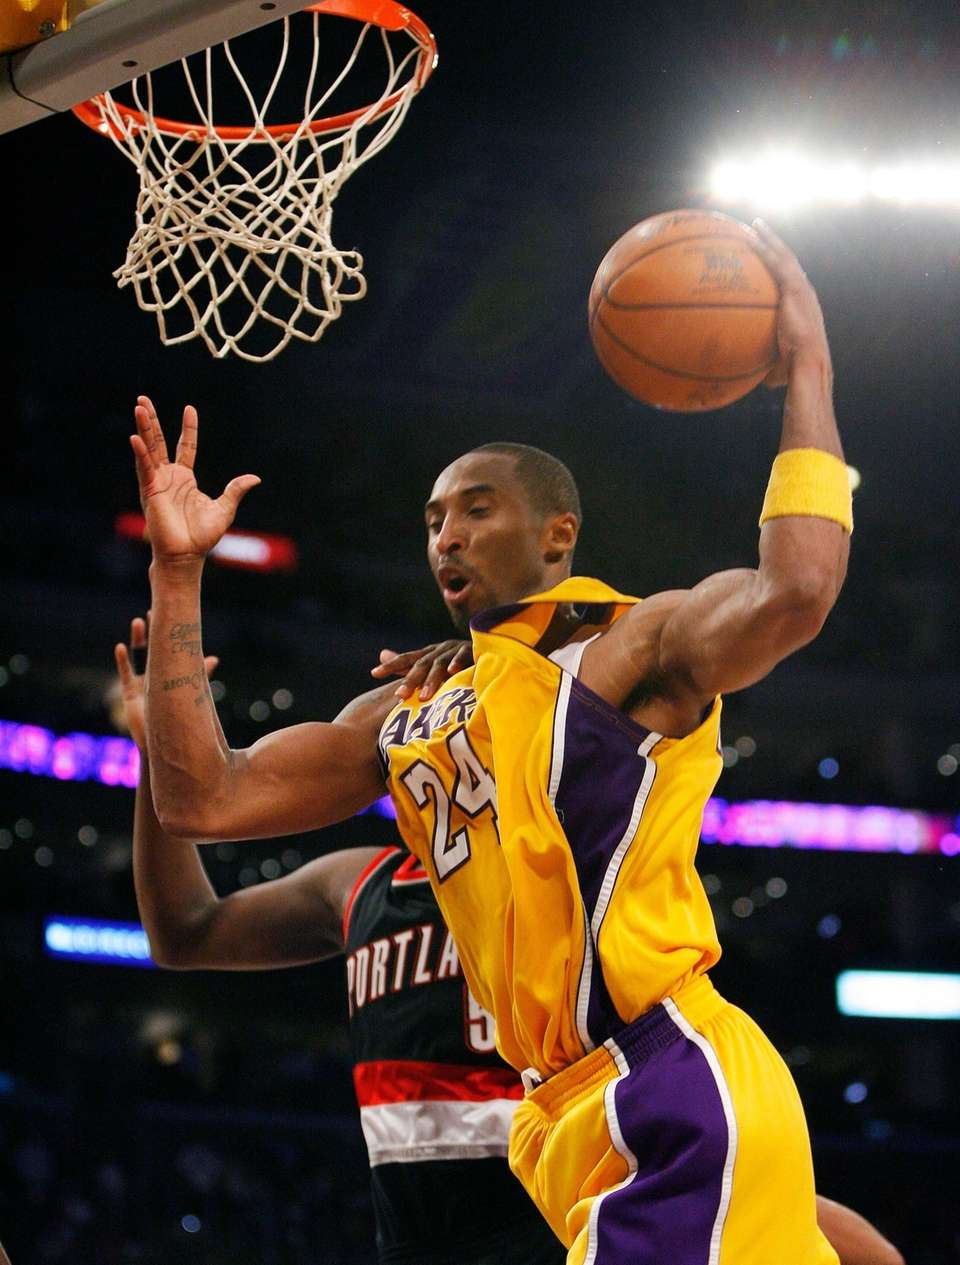 Kobe Bryant scored 50 or more points in